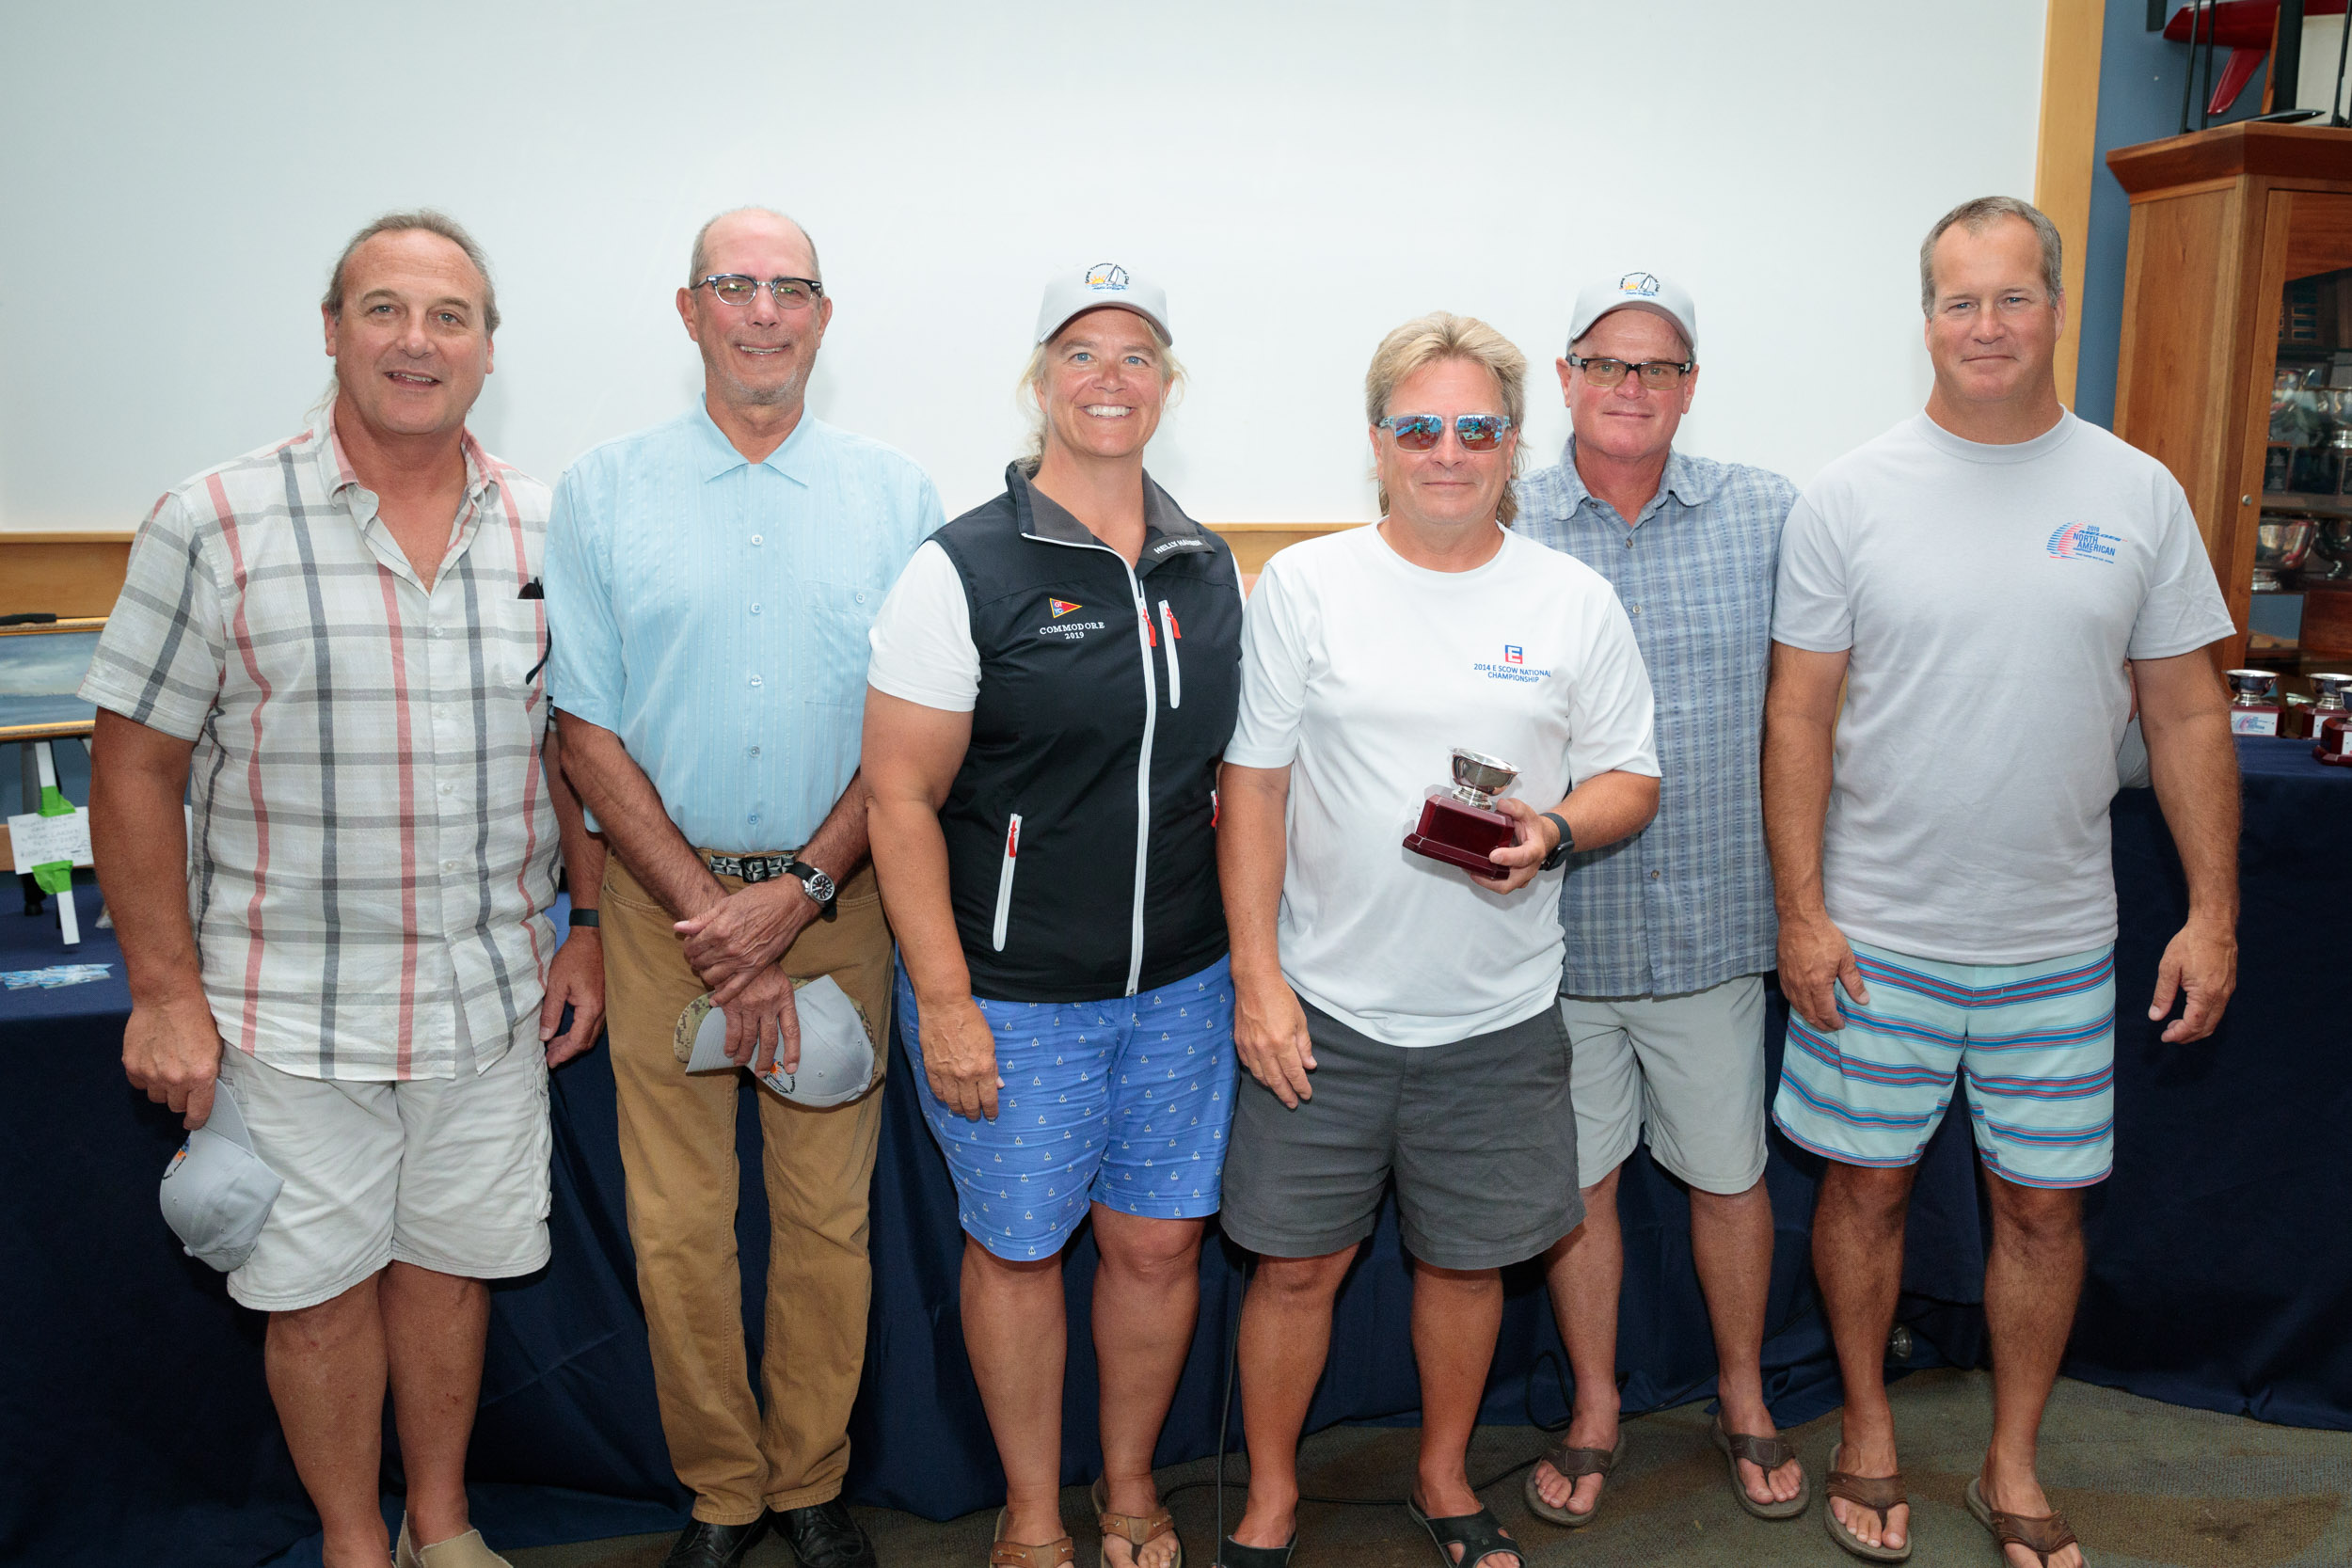 2nd Place Corinthian, 2019 Melges 24 North American Championship -  Flying Toaster : Mike Dow, Bob Clark, Brad Savage, Gregg Diehl. © Bill Crawford - Harbor Pictures Company